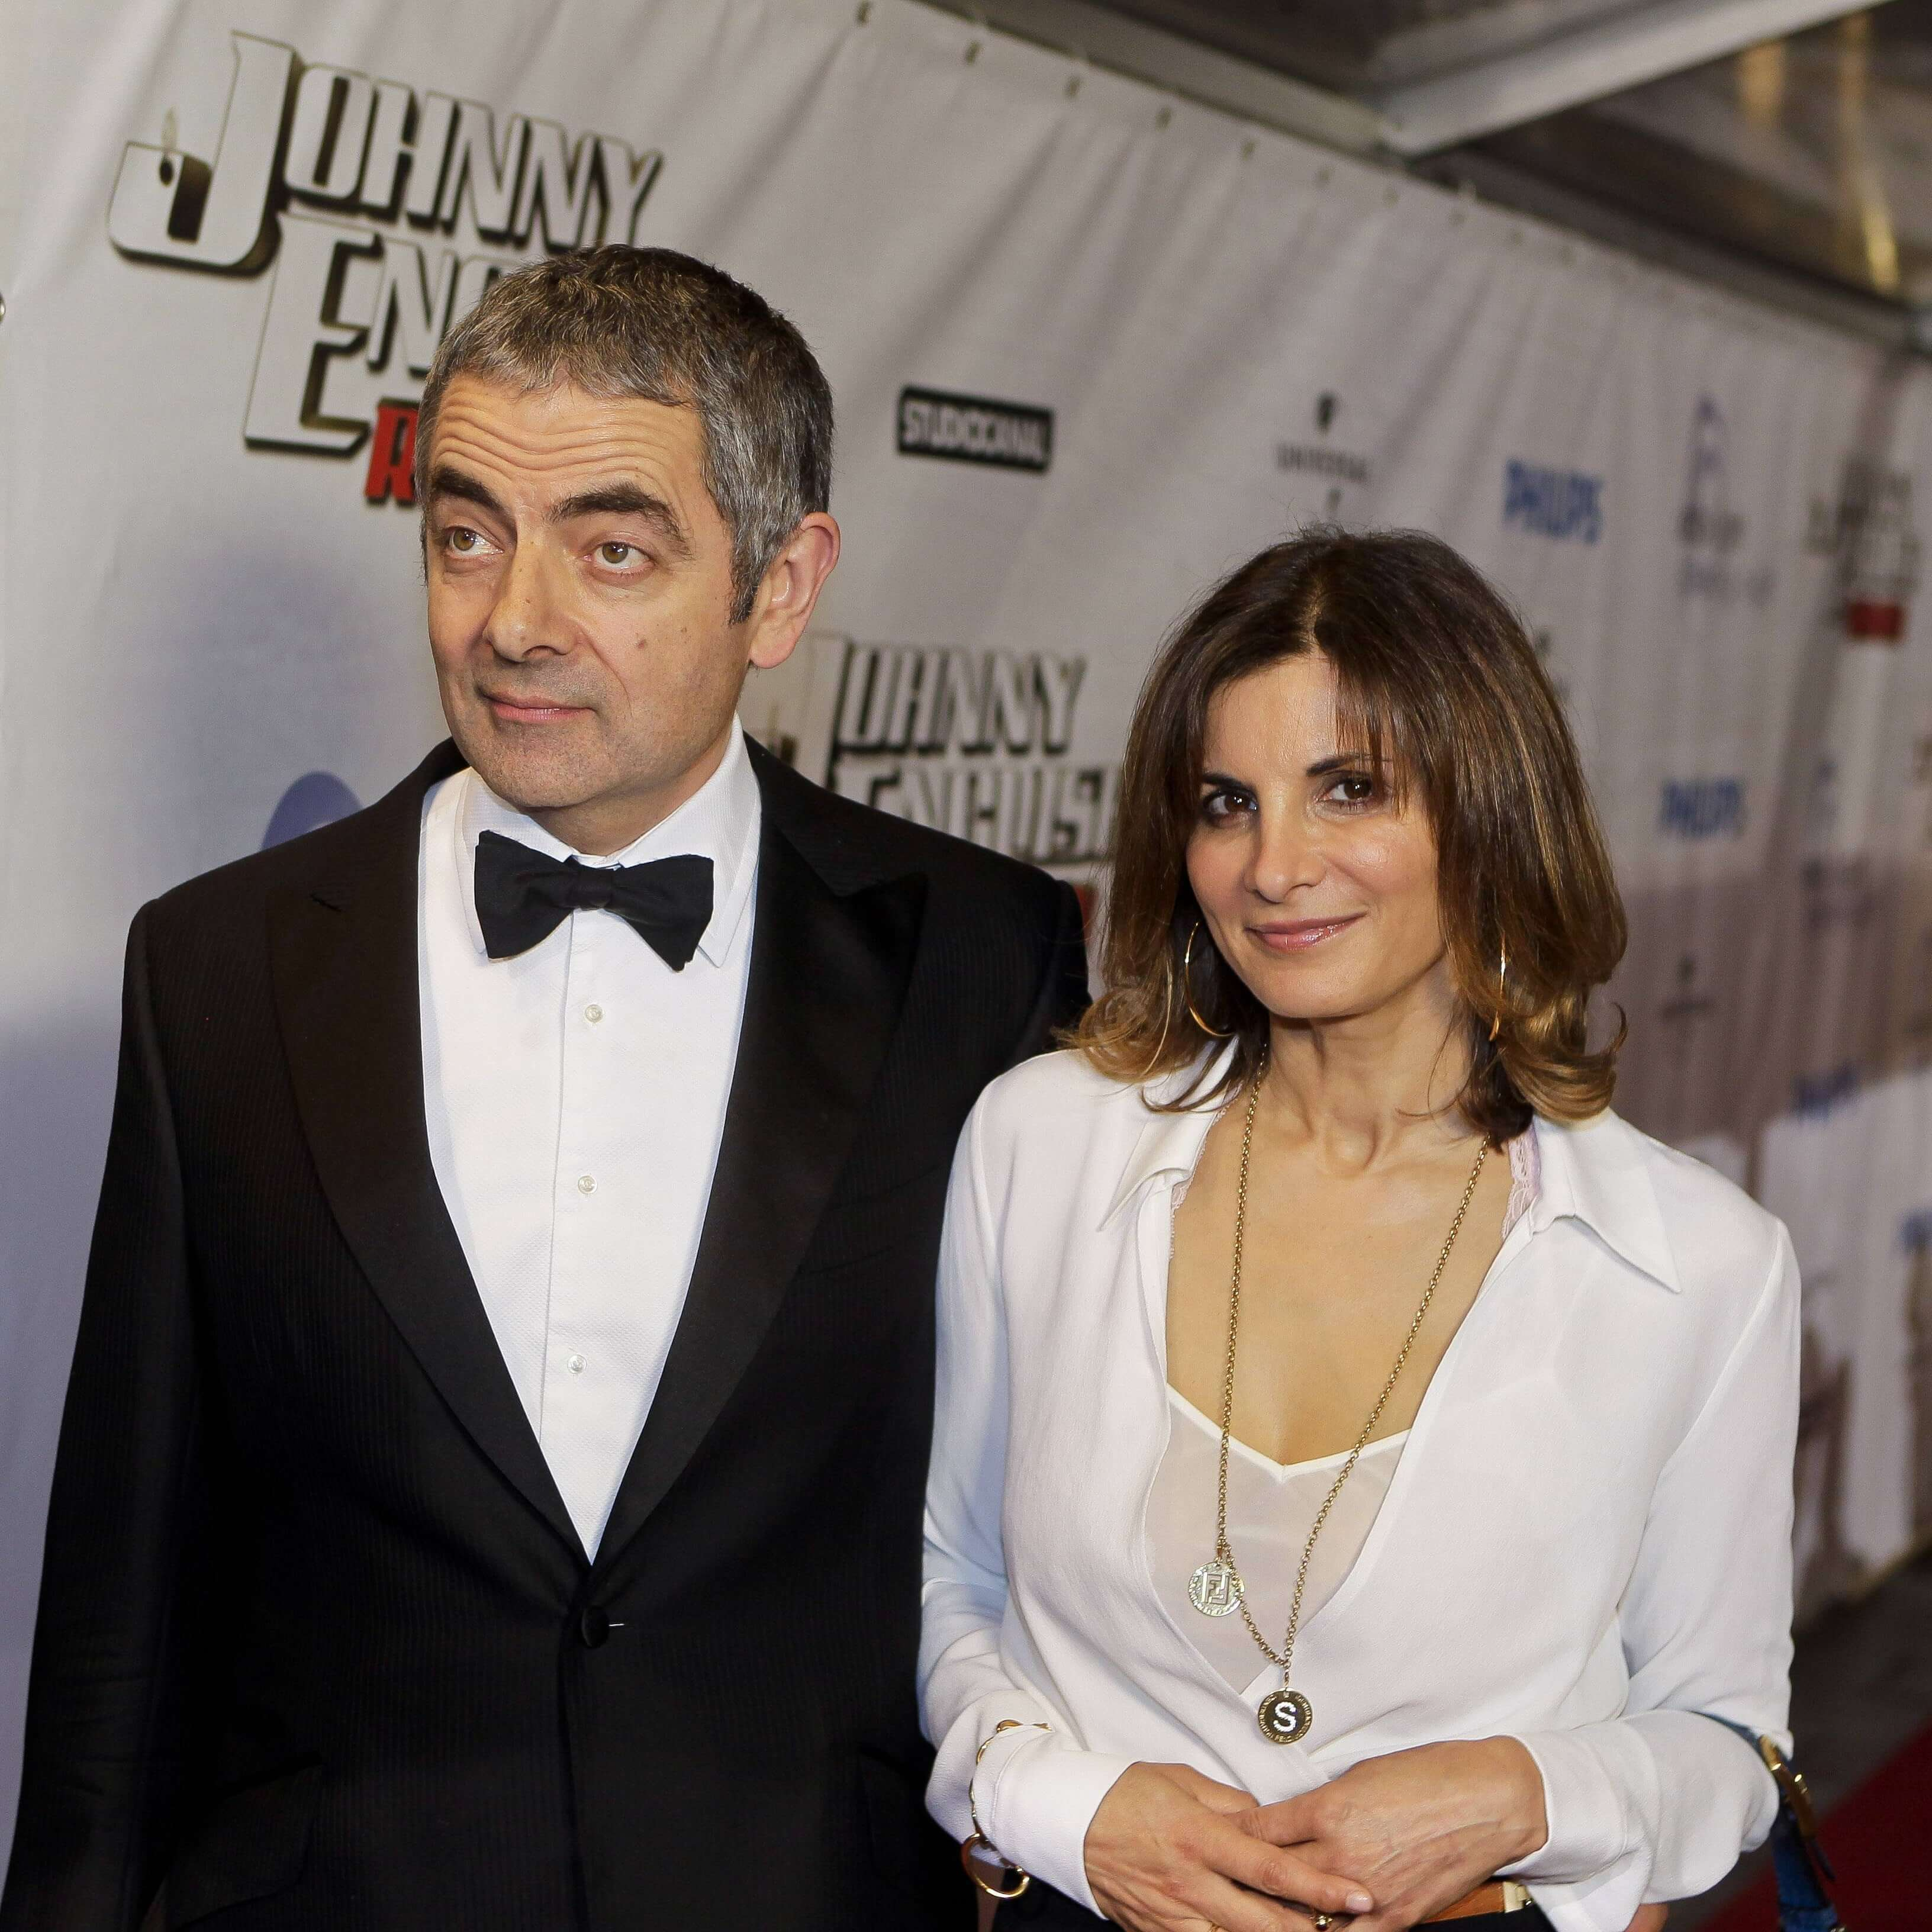 Mr. Bean and Sunetra